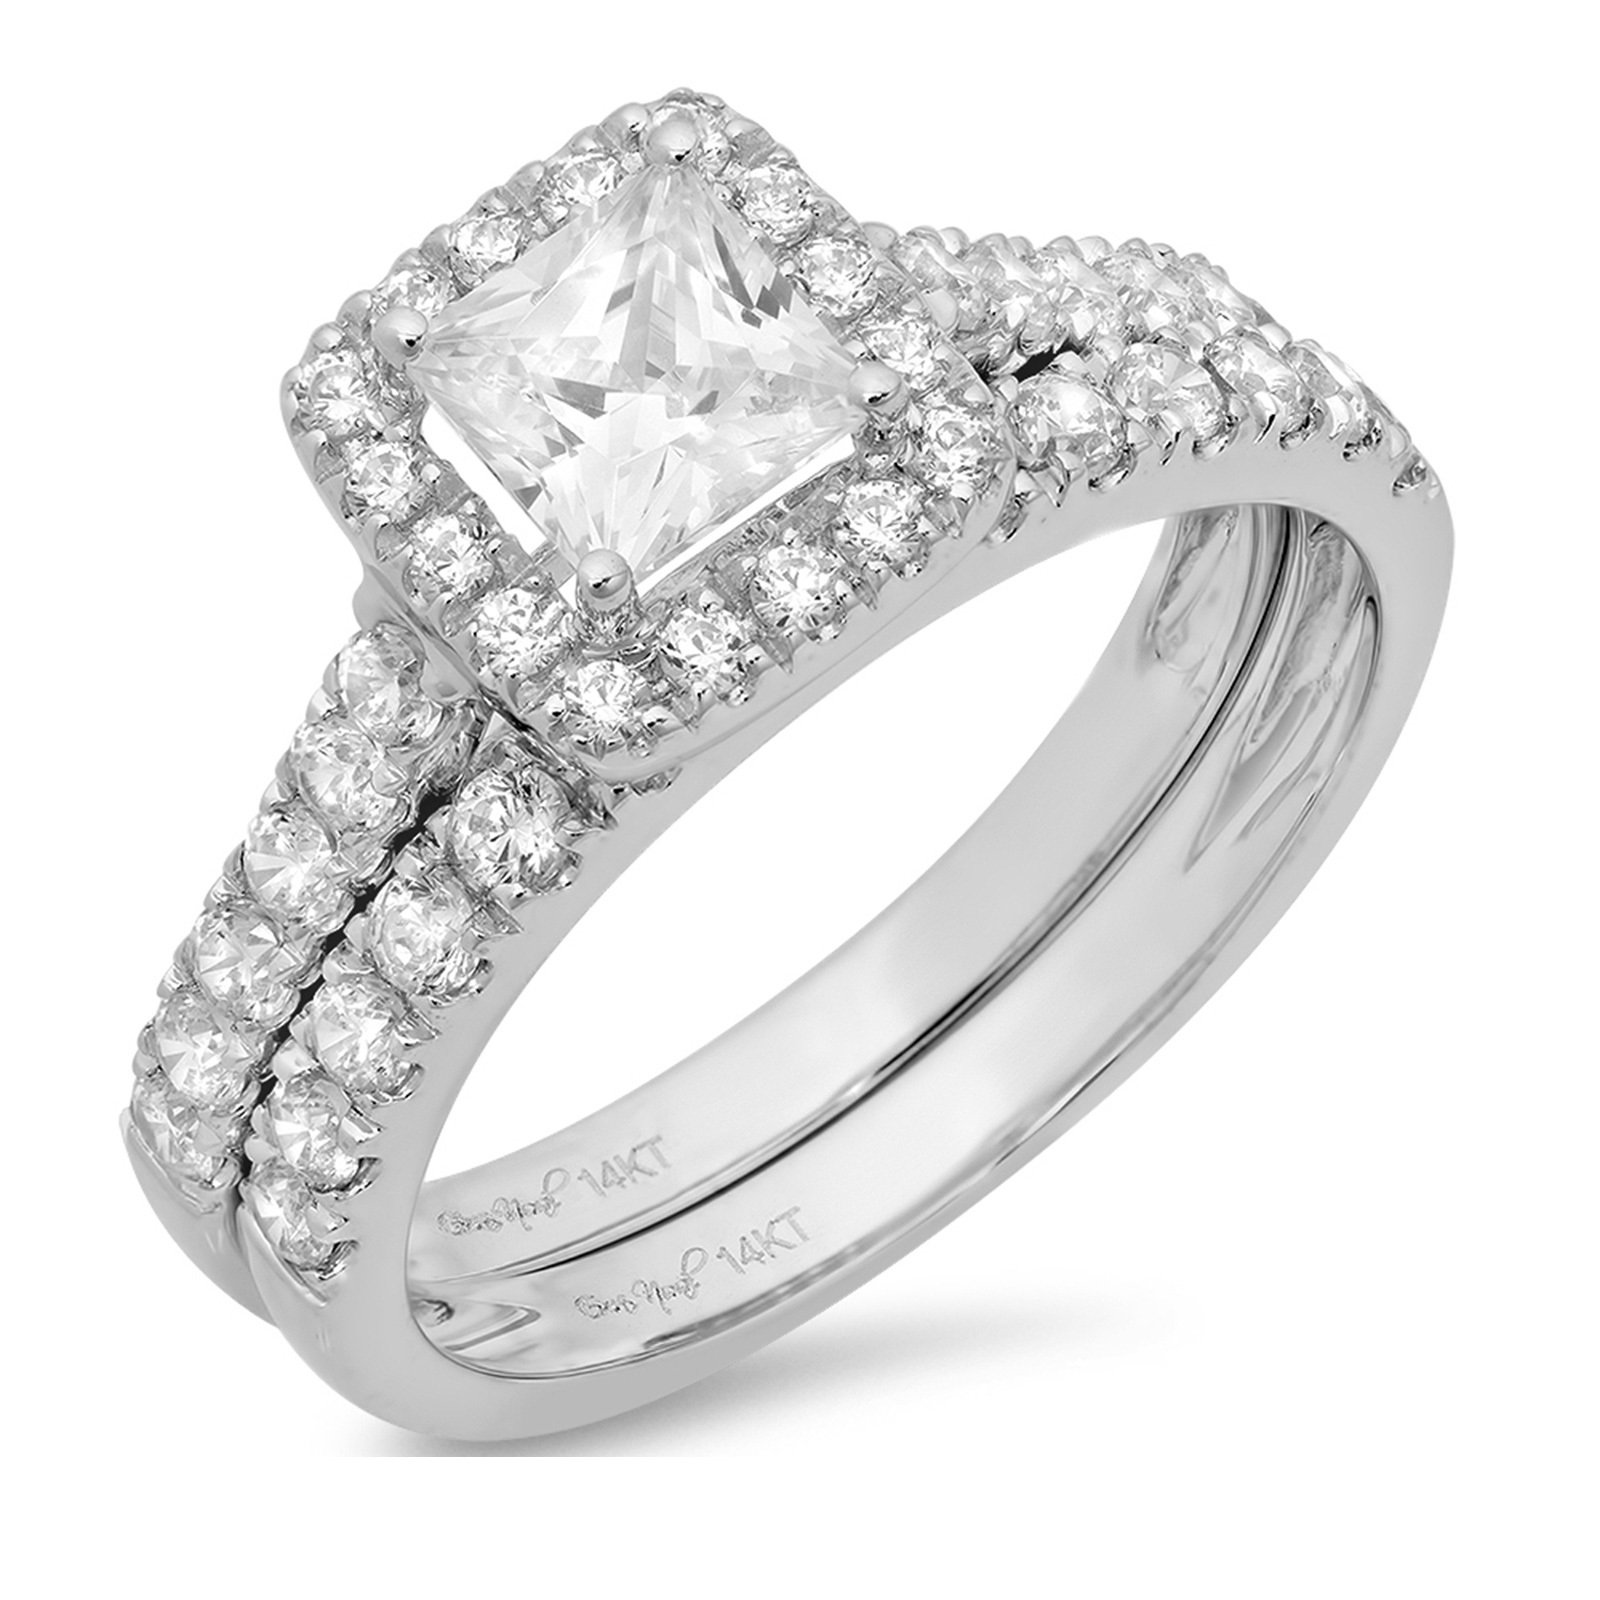 Clara Pucci 2.10ct Princess Brilliant Cut Pave Accent Classic Designer Simulated Diamond Solitaire Designer Statement Halo Ring band set Solid 14k White Gold for Women, 7 by Clara Pucci